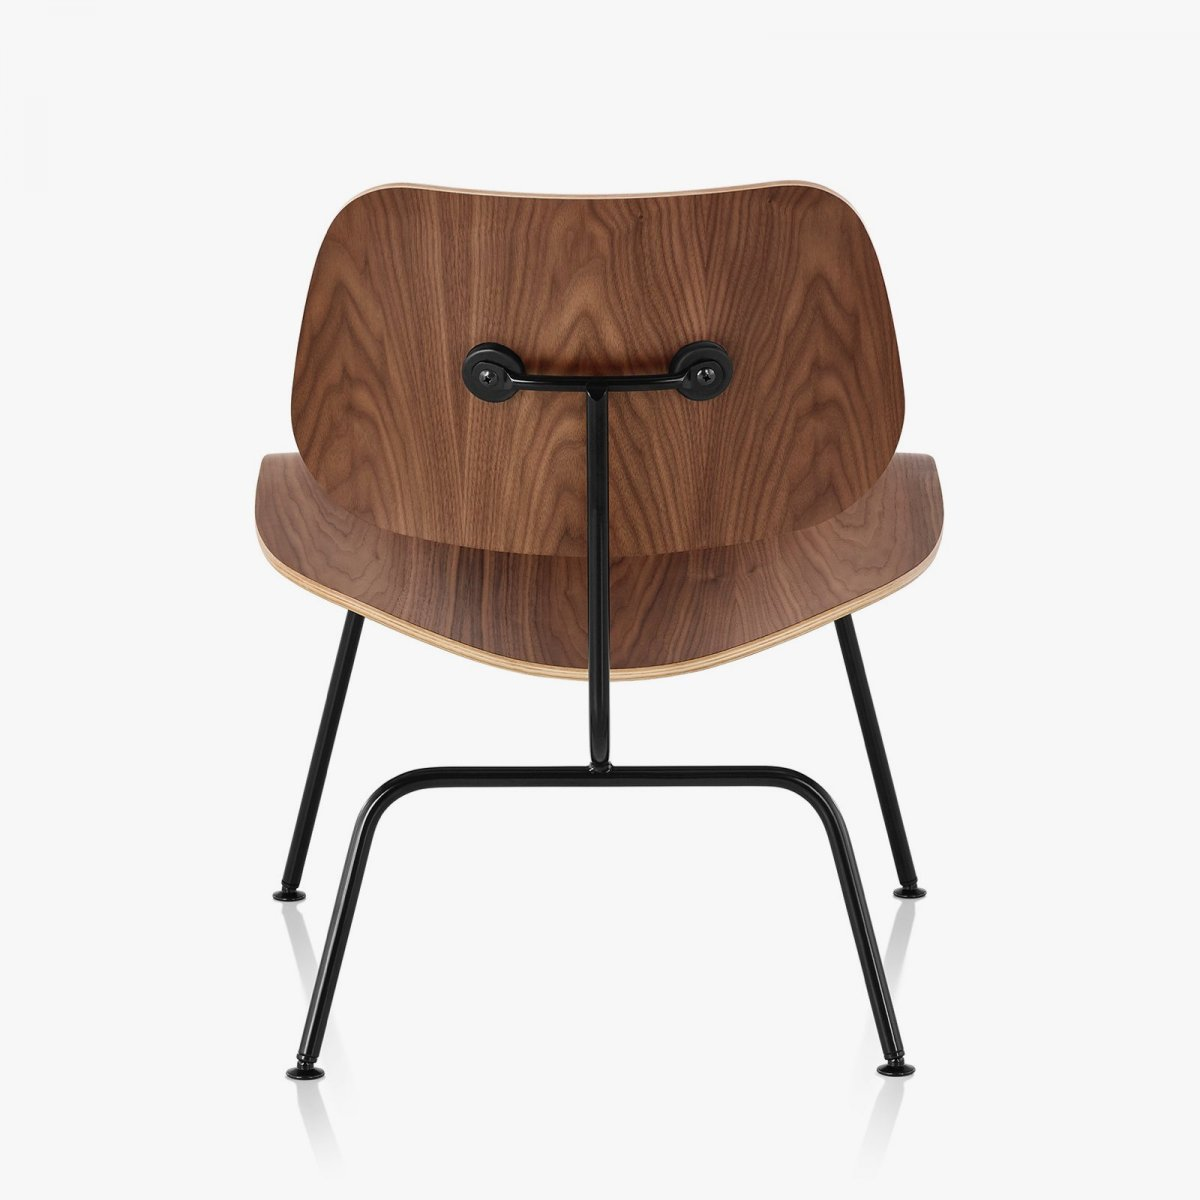 Eames Molded Plywood Lounge Chair Metal Base, walnut + black, back view.